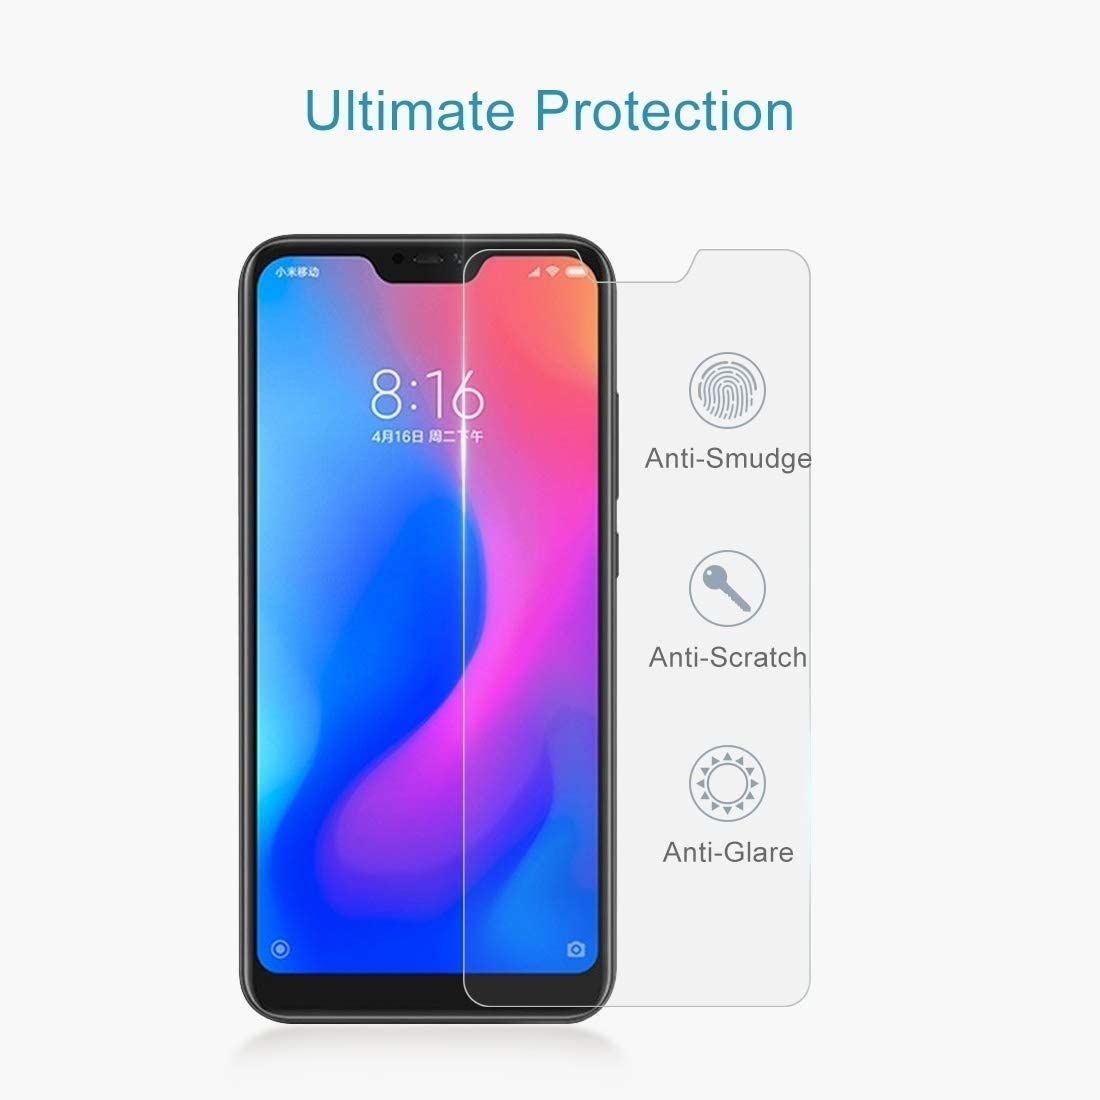 ZYS Screen Protector 100 PCS Smartisan Nut Pro 0.26mm 9H Surface Hardness 2.5D Curved Edge Tempered Glass Front Screen Protector